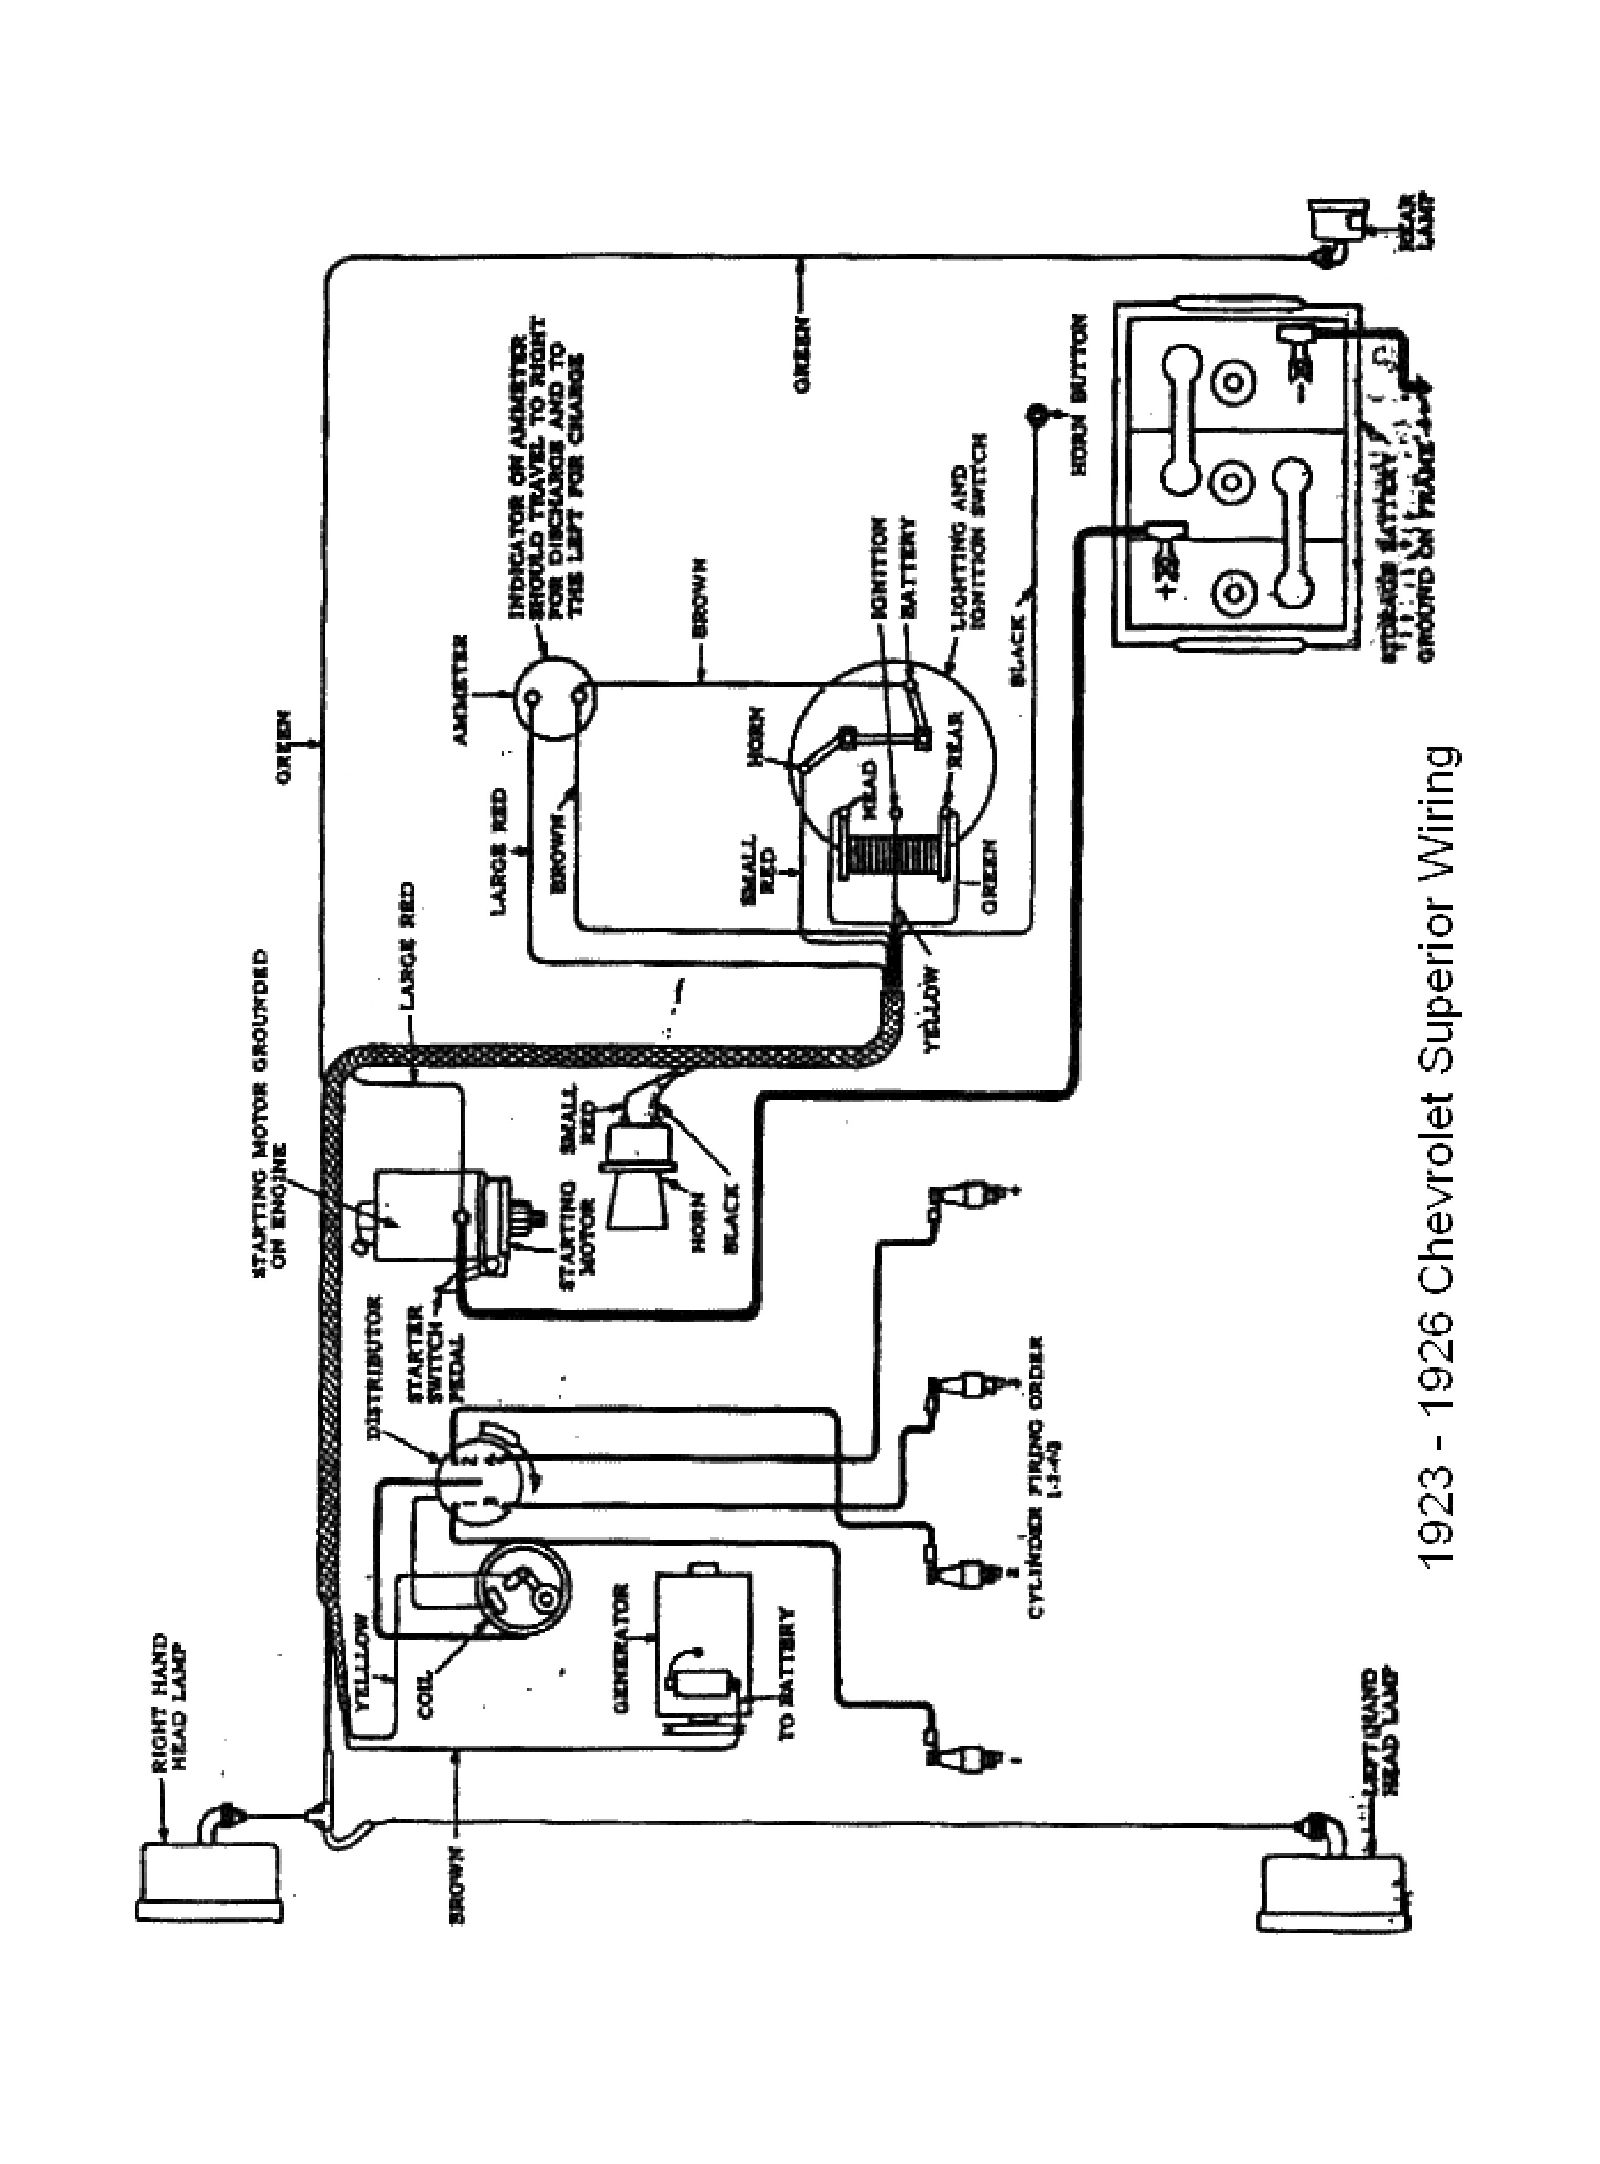 1939 Cadillac Wiring Diagram Great Design Of Harness Distributor Lasalle 1949 Pontiac 1965 2003 Cts